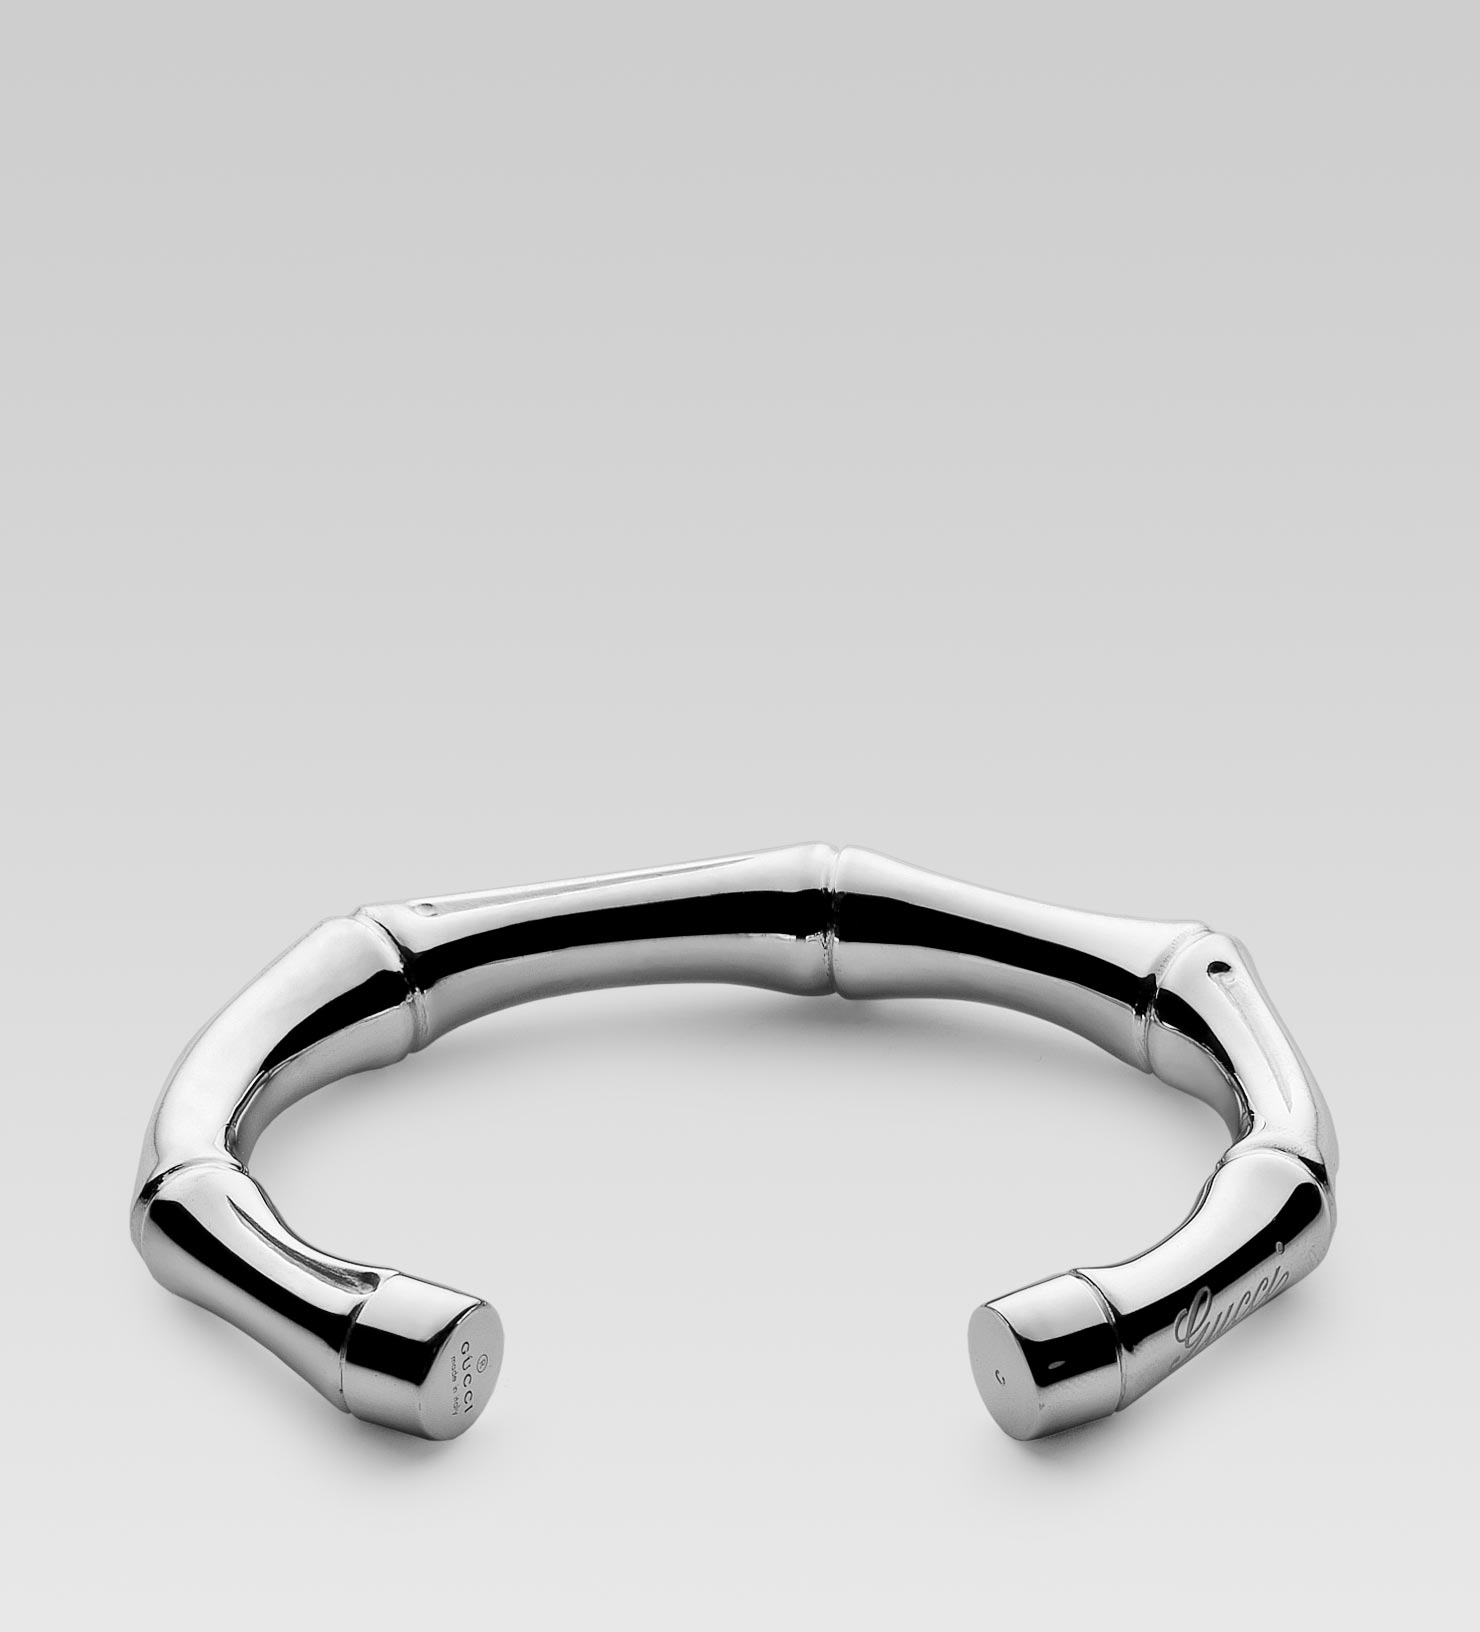 Gucci Silver Bamboo Bracelet In Metallic For Men Lyst